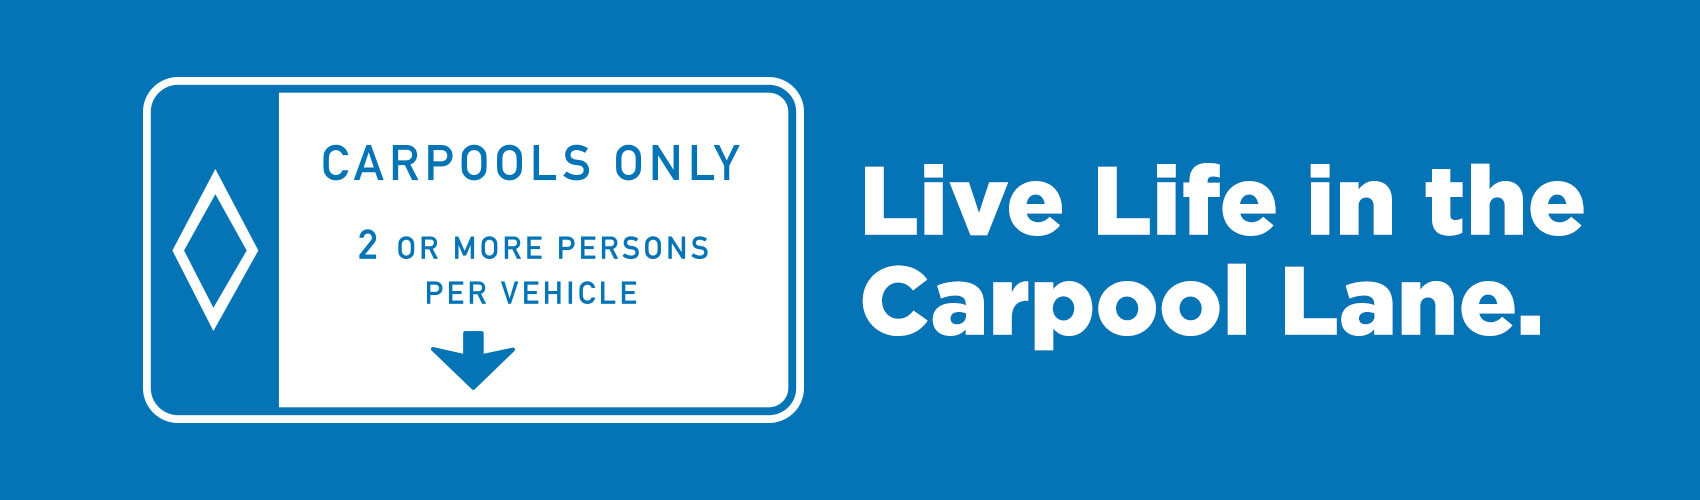 carpool_lane_blue1